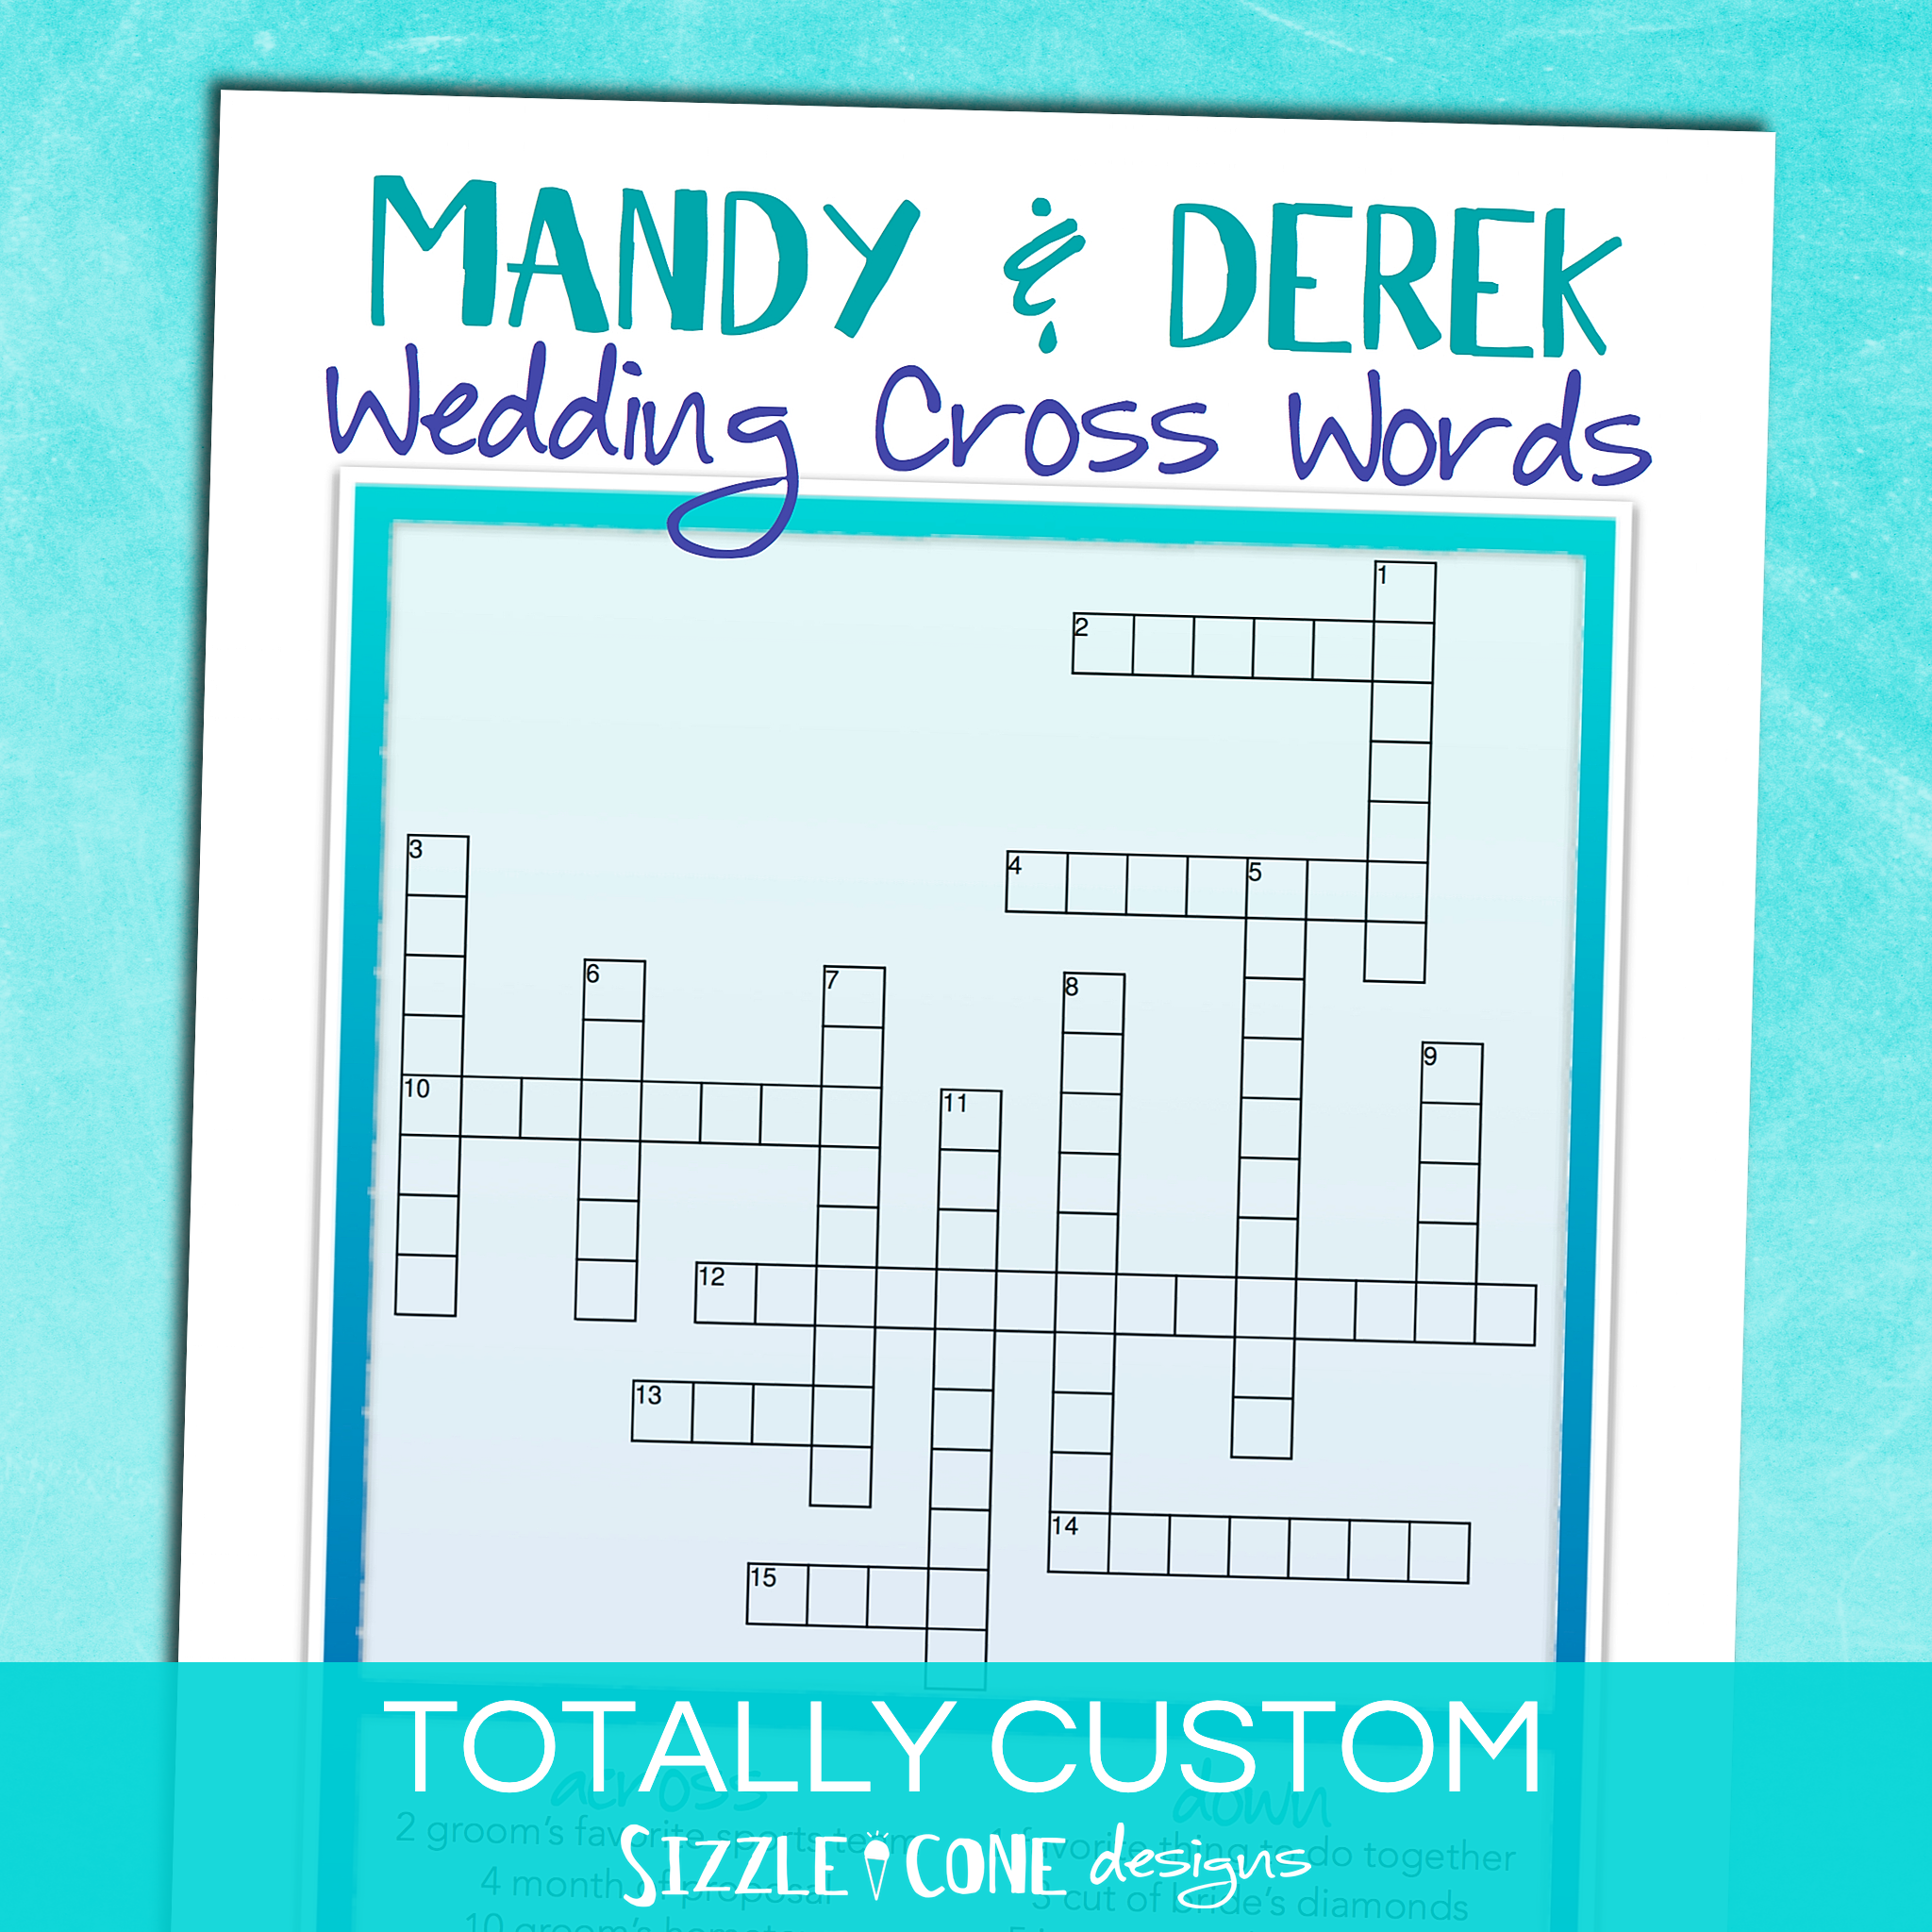 custom wedding crossword puzzle sizzle cone designs